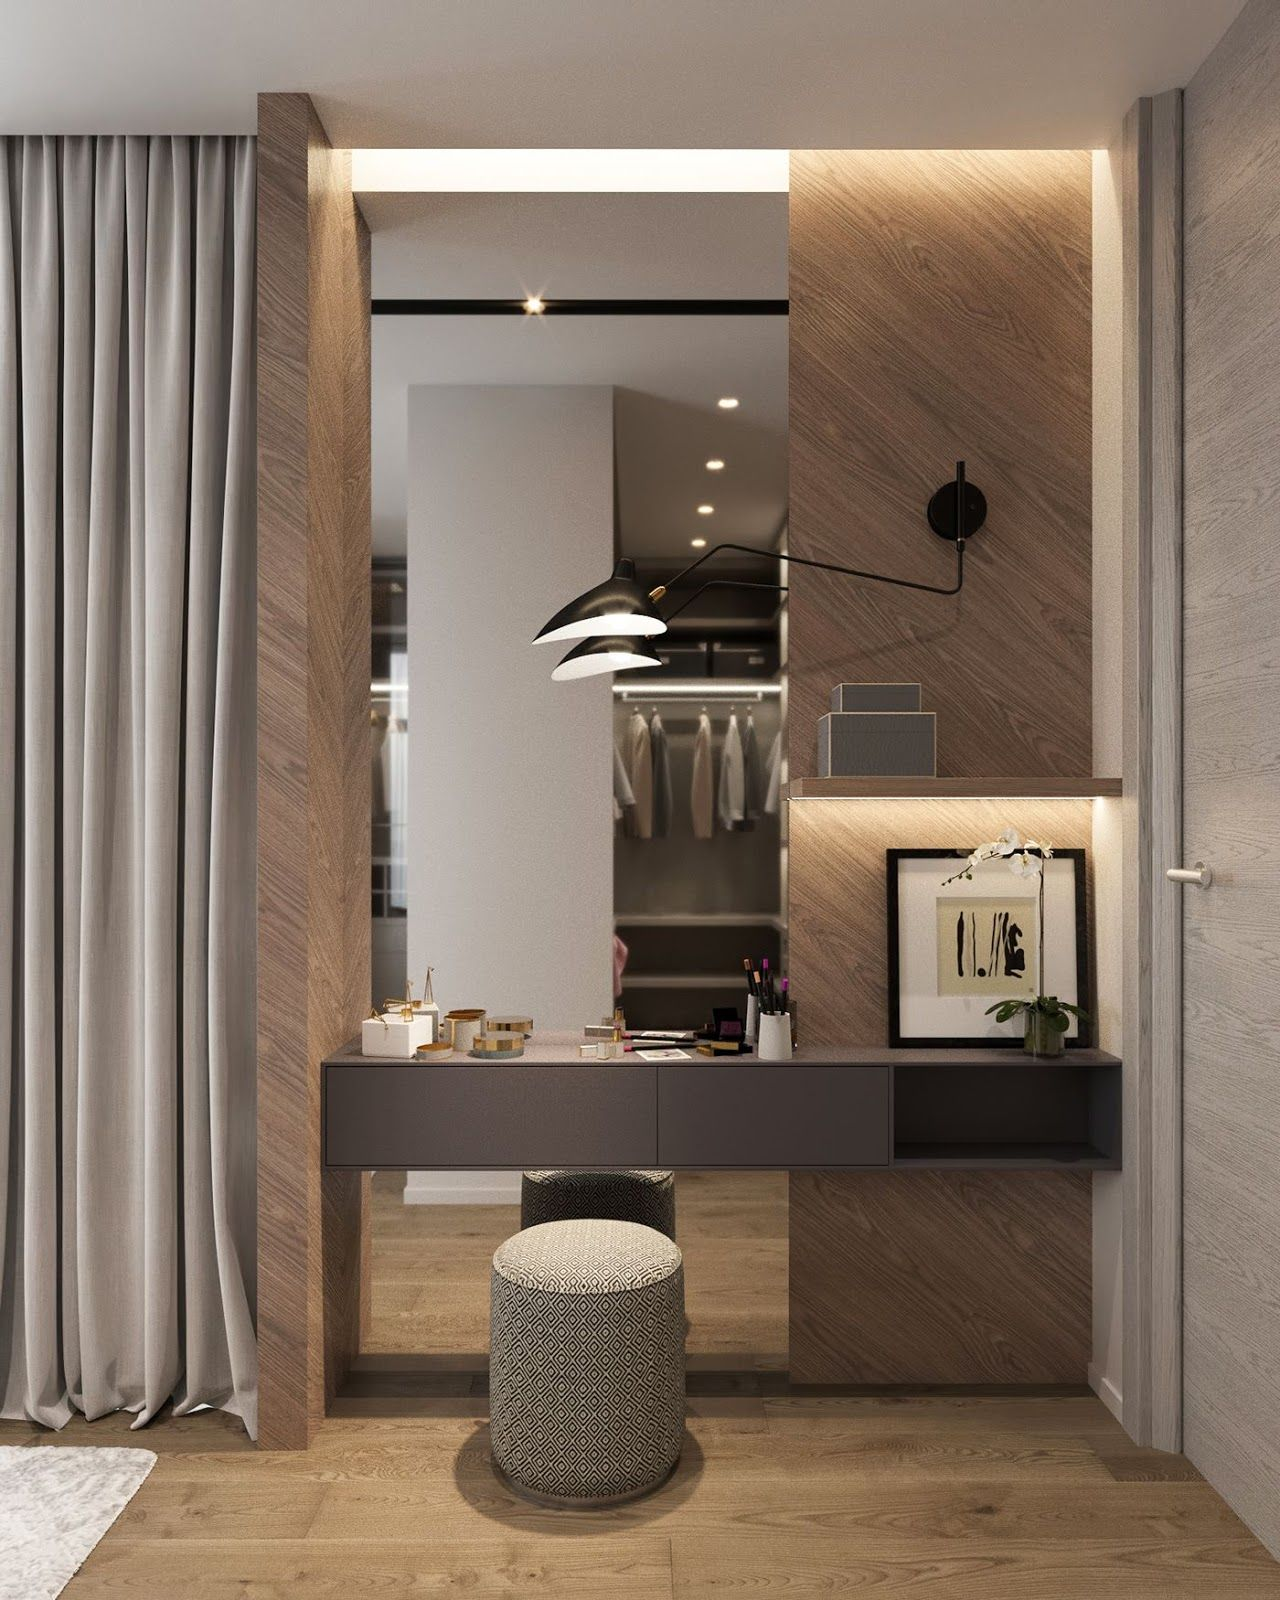 25 Dressing Table Design Ideas For Your Bedroom Dressing Table Design Bedroom Interior Dressing Room Decor